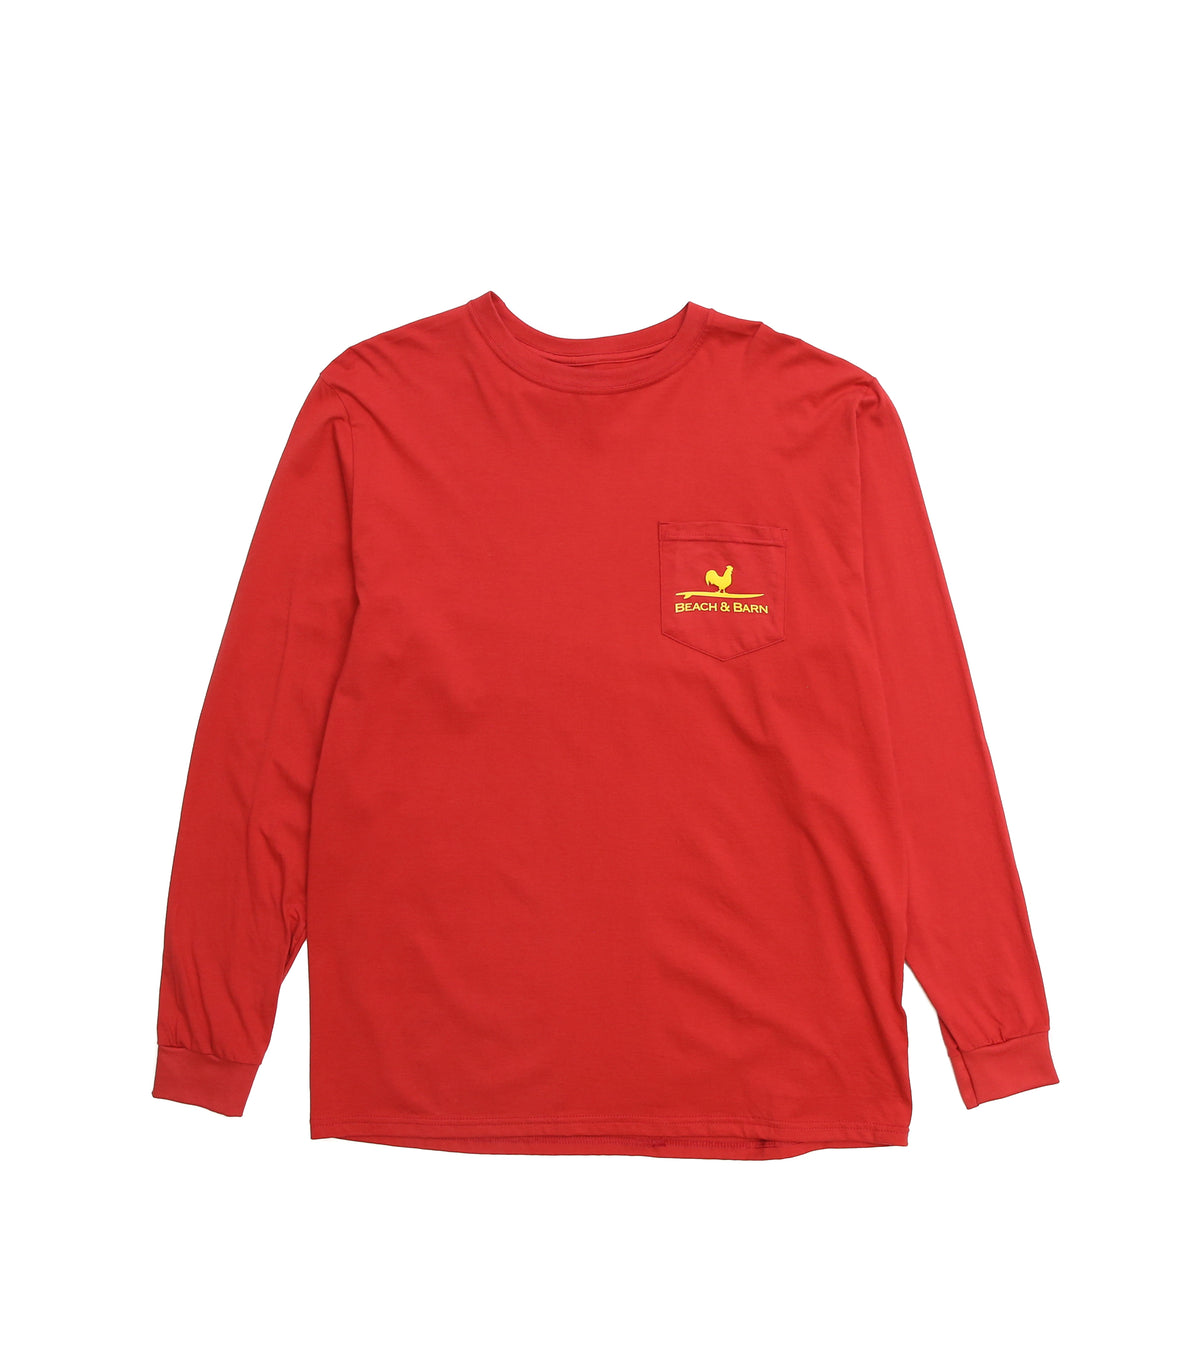 Sale - Taco Meat Pocket Tee Long Sleeve